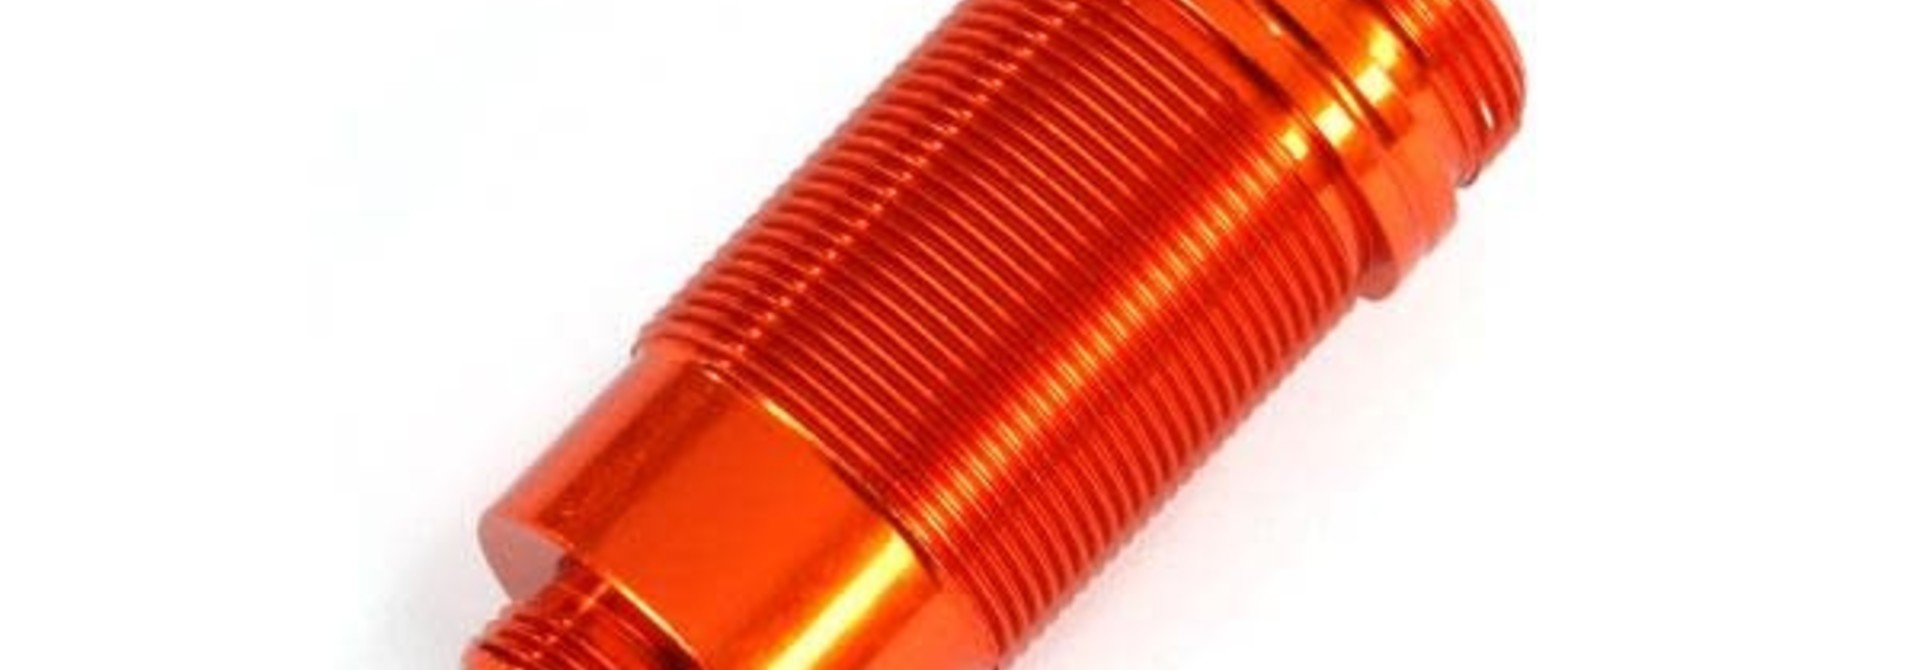 Body, GTR long shock, aluminum (orange-anodized) (PTFE-coated bodies) (1)